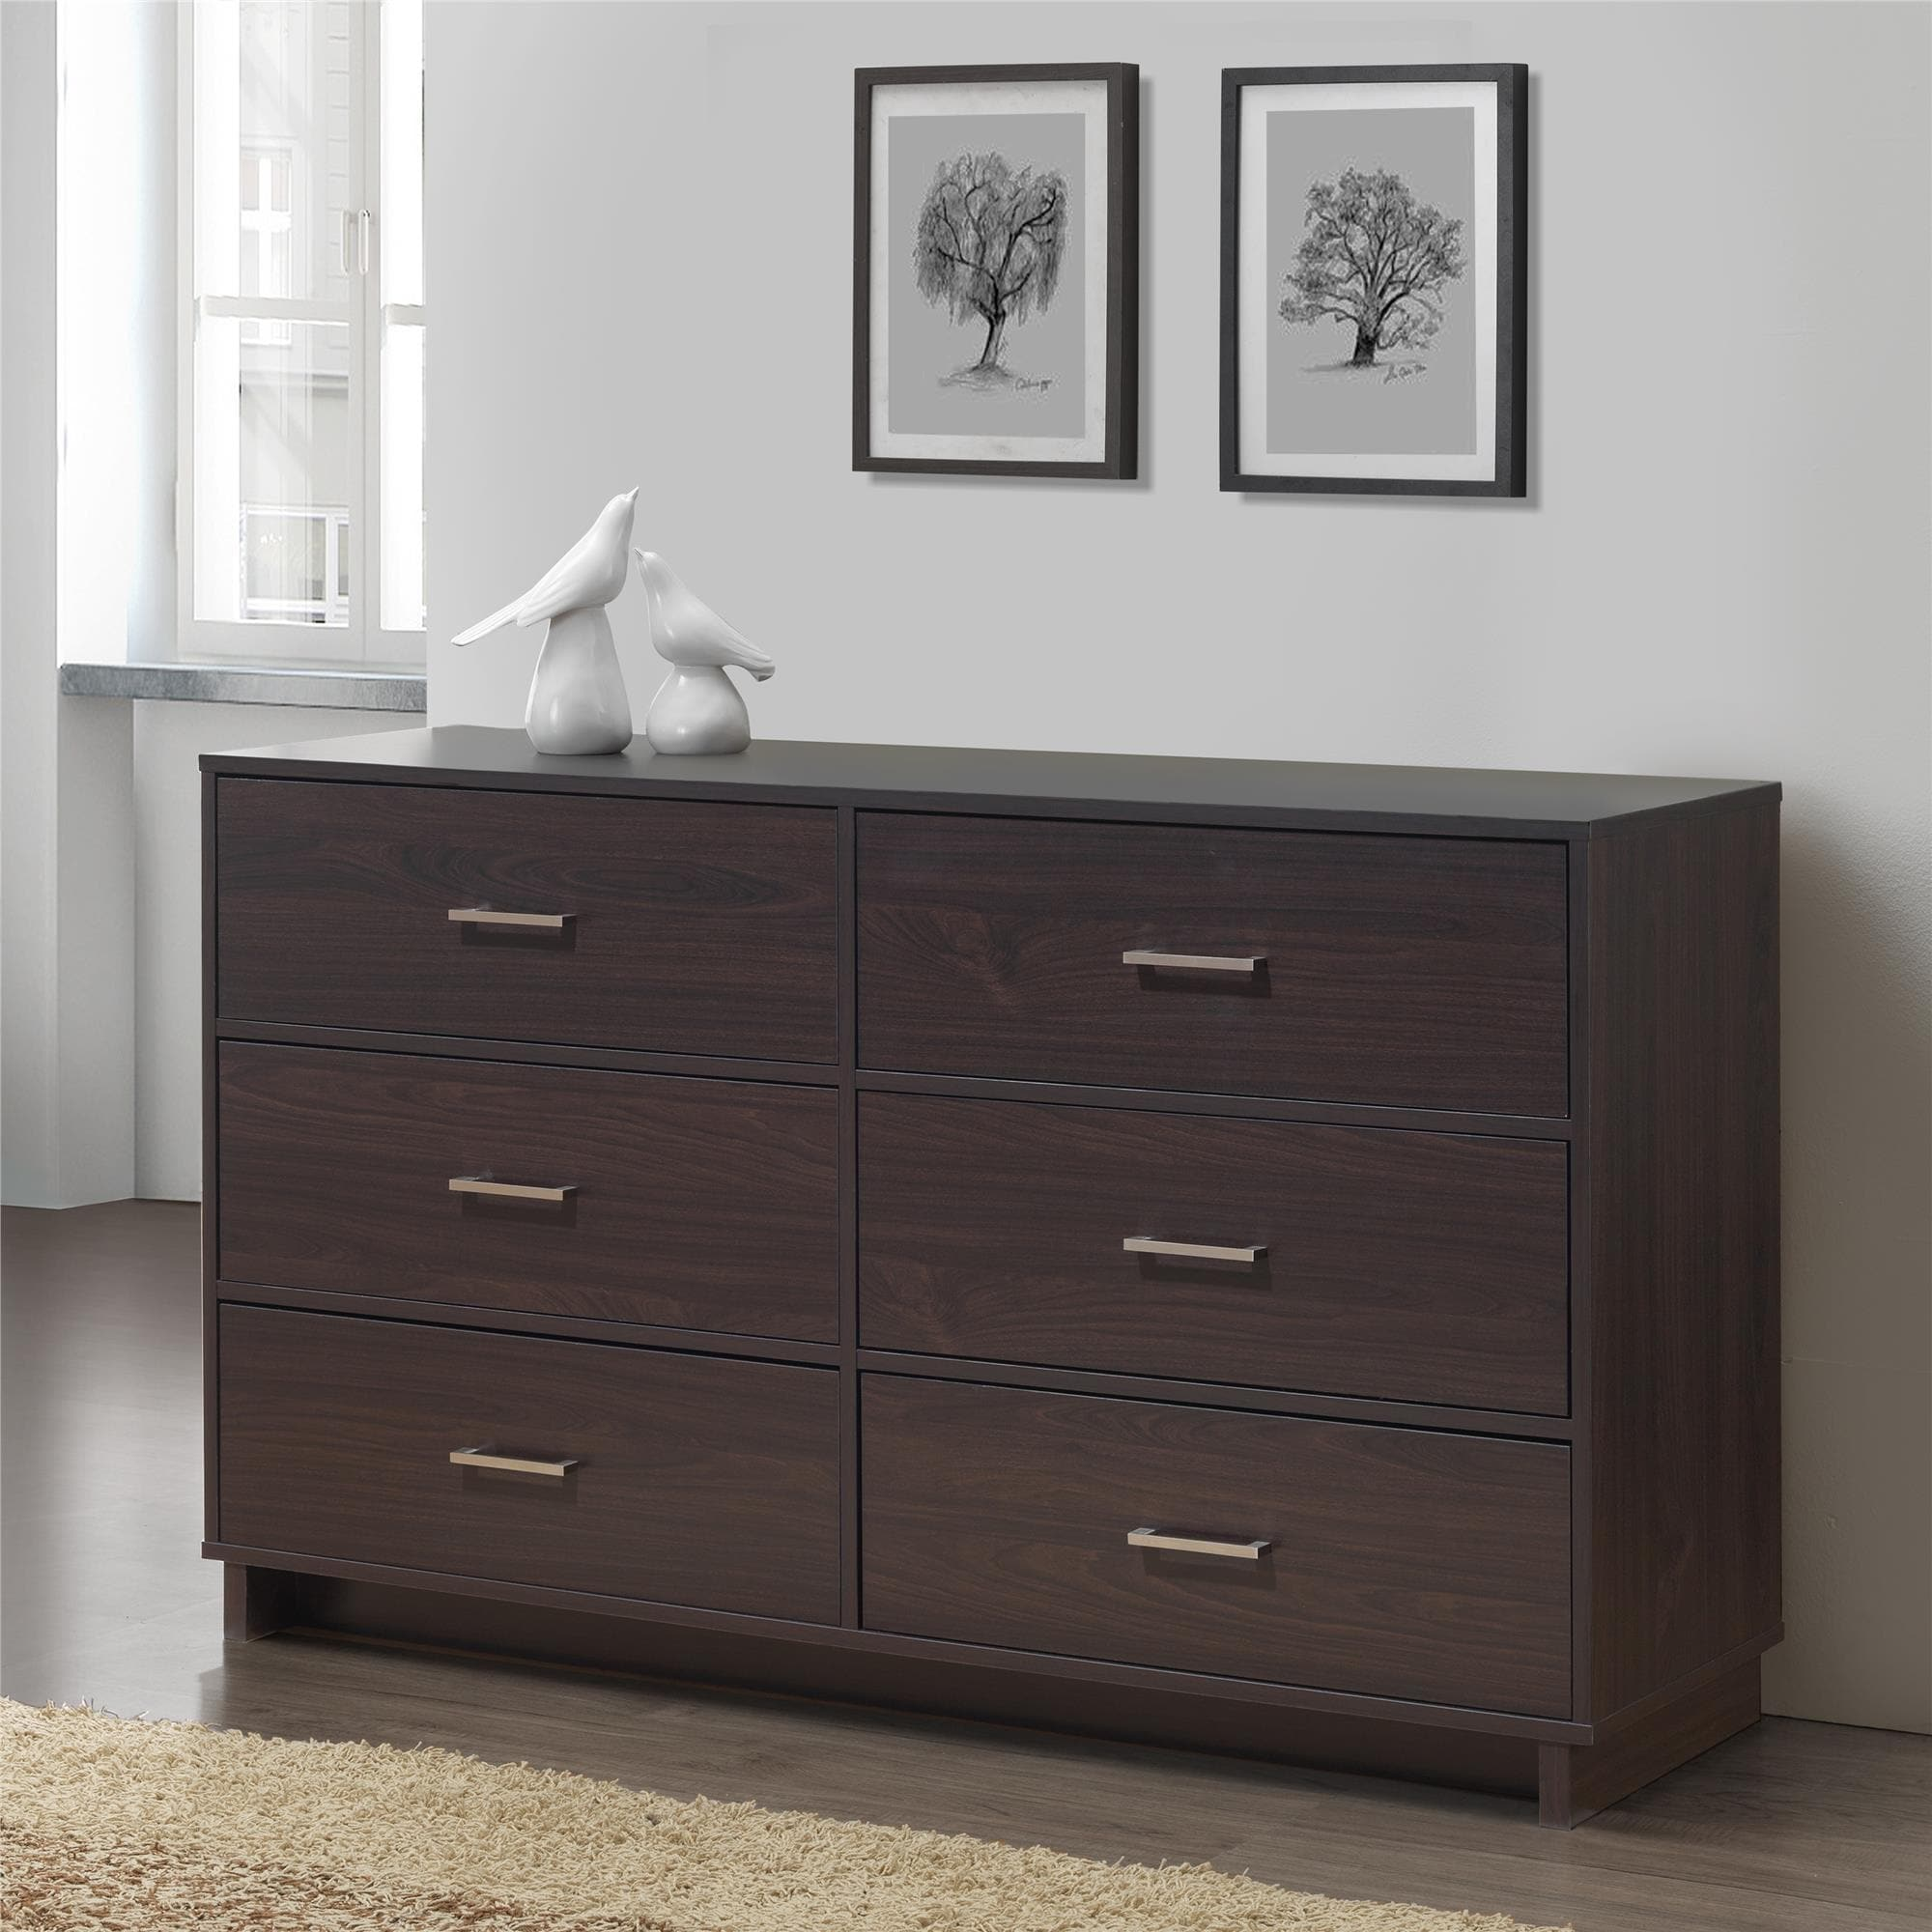 bernie furniture drawer s modern phyl dresser dressers american bedroom mocha